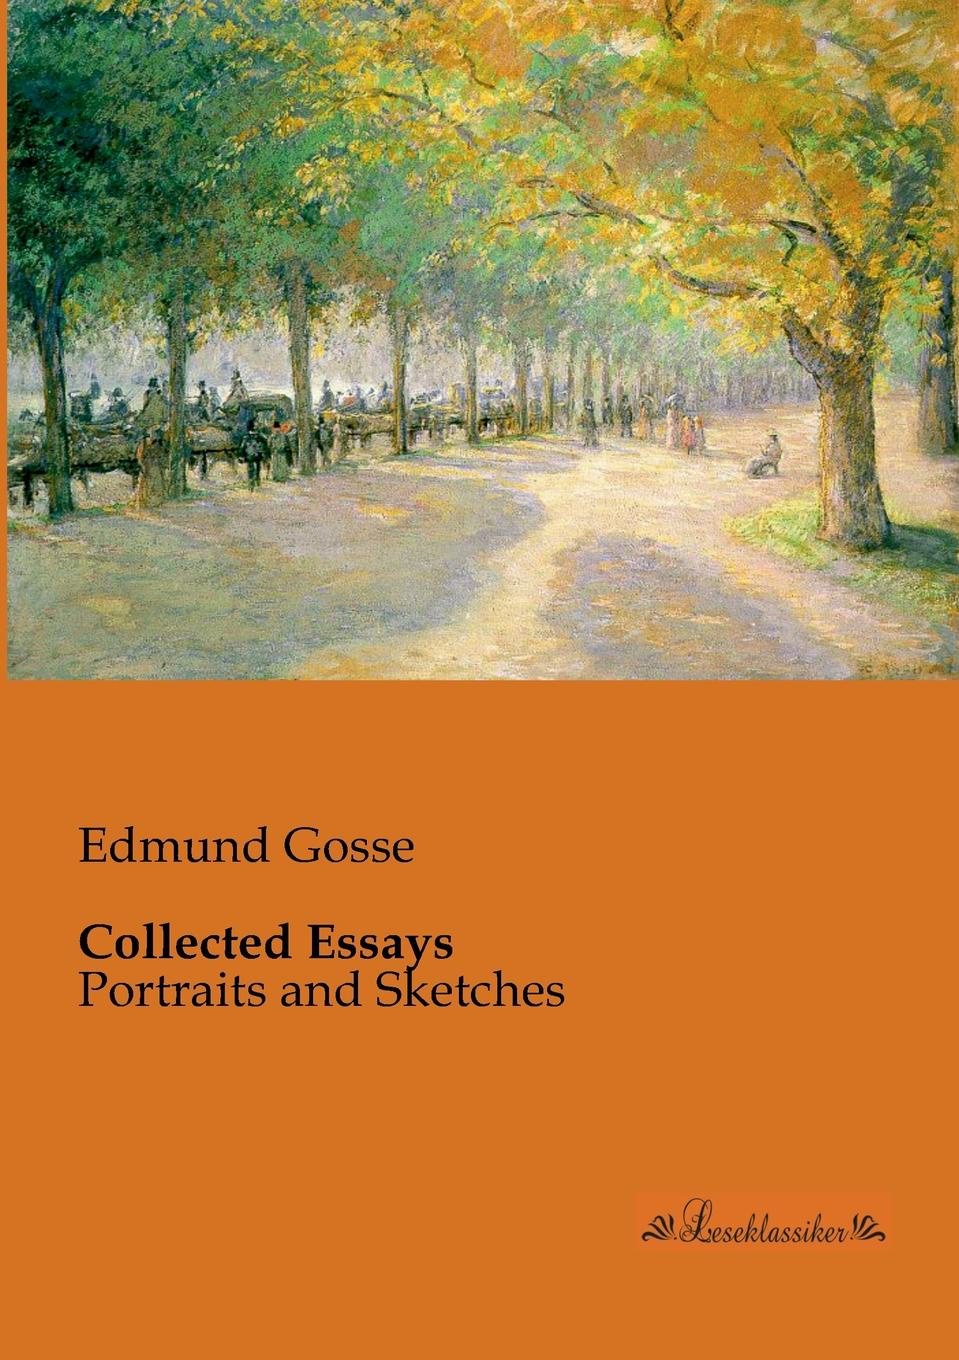 лучшая цена Edmund Gosse Collected Essays